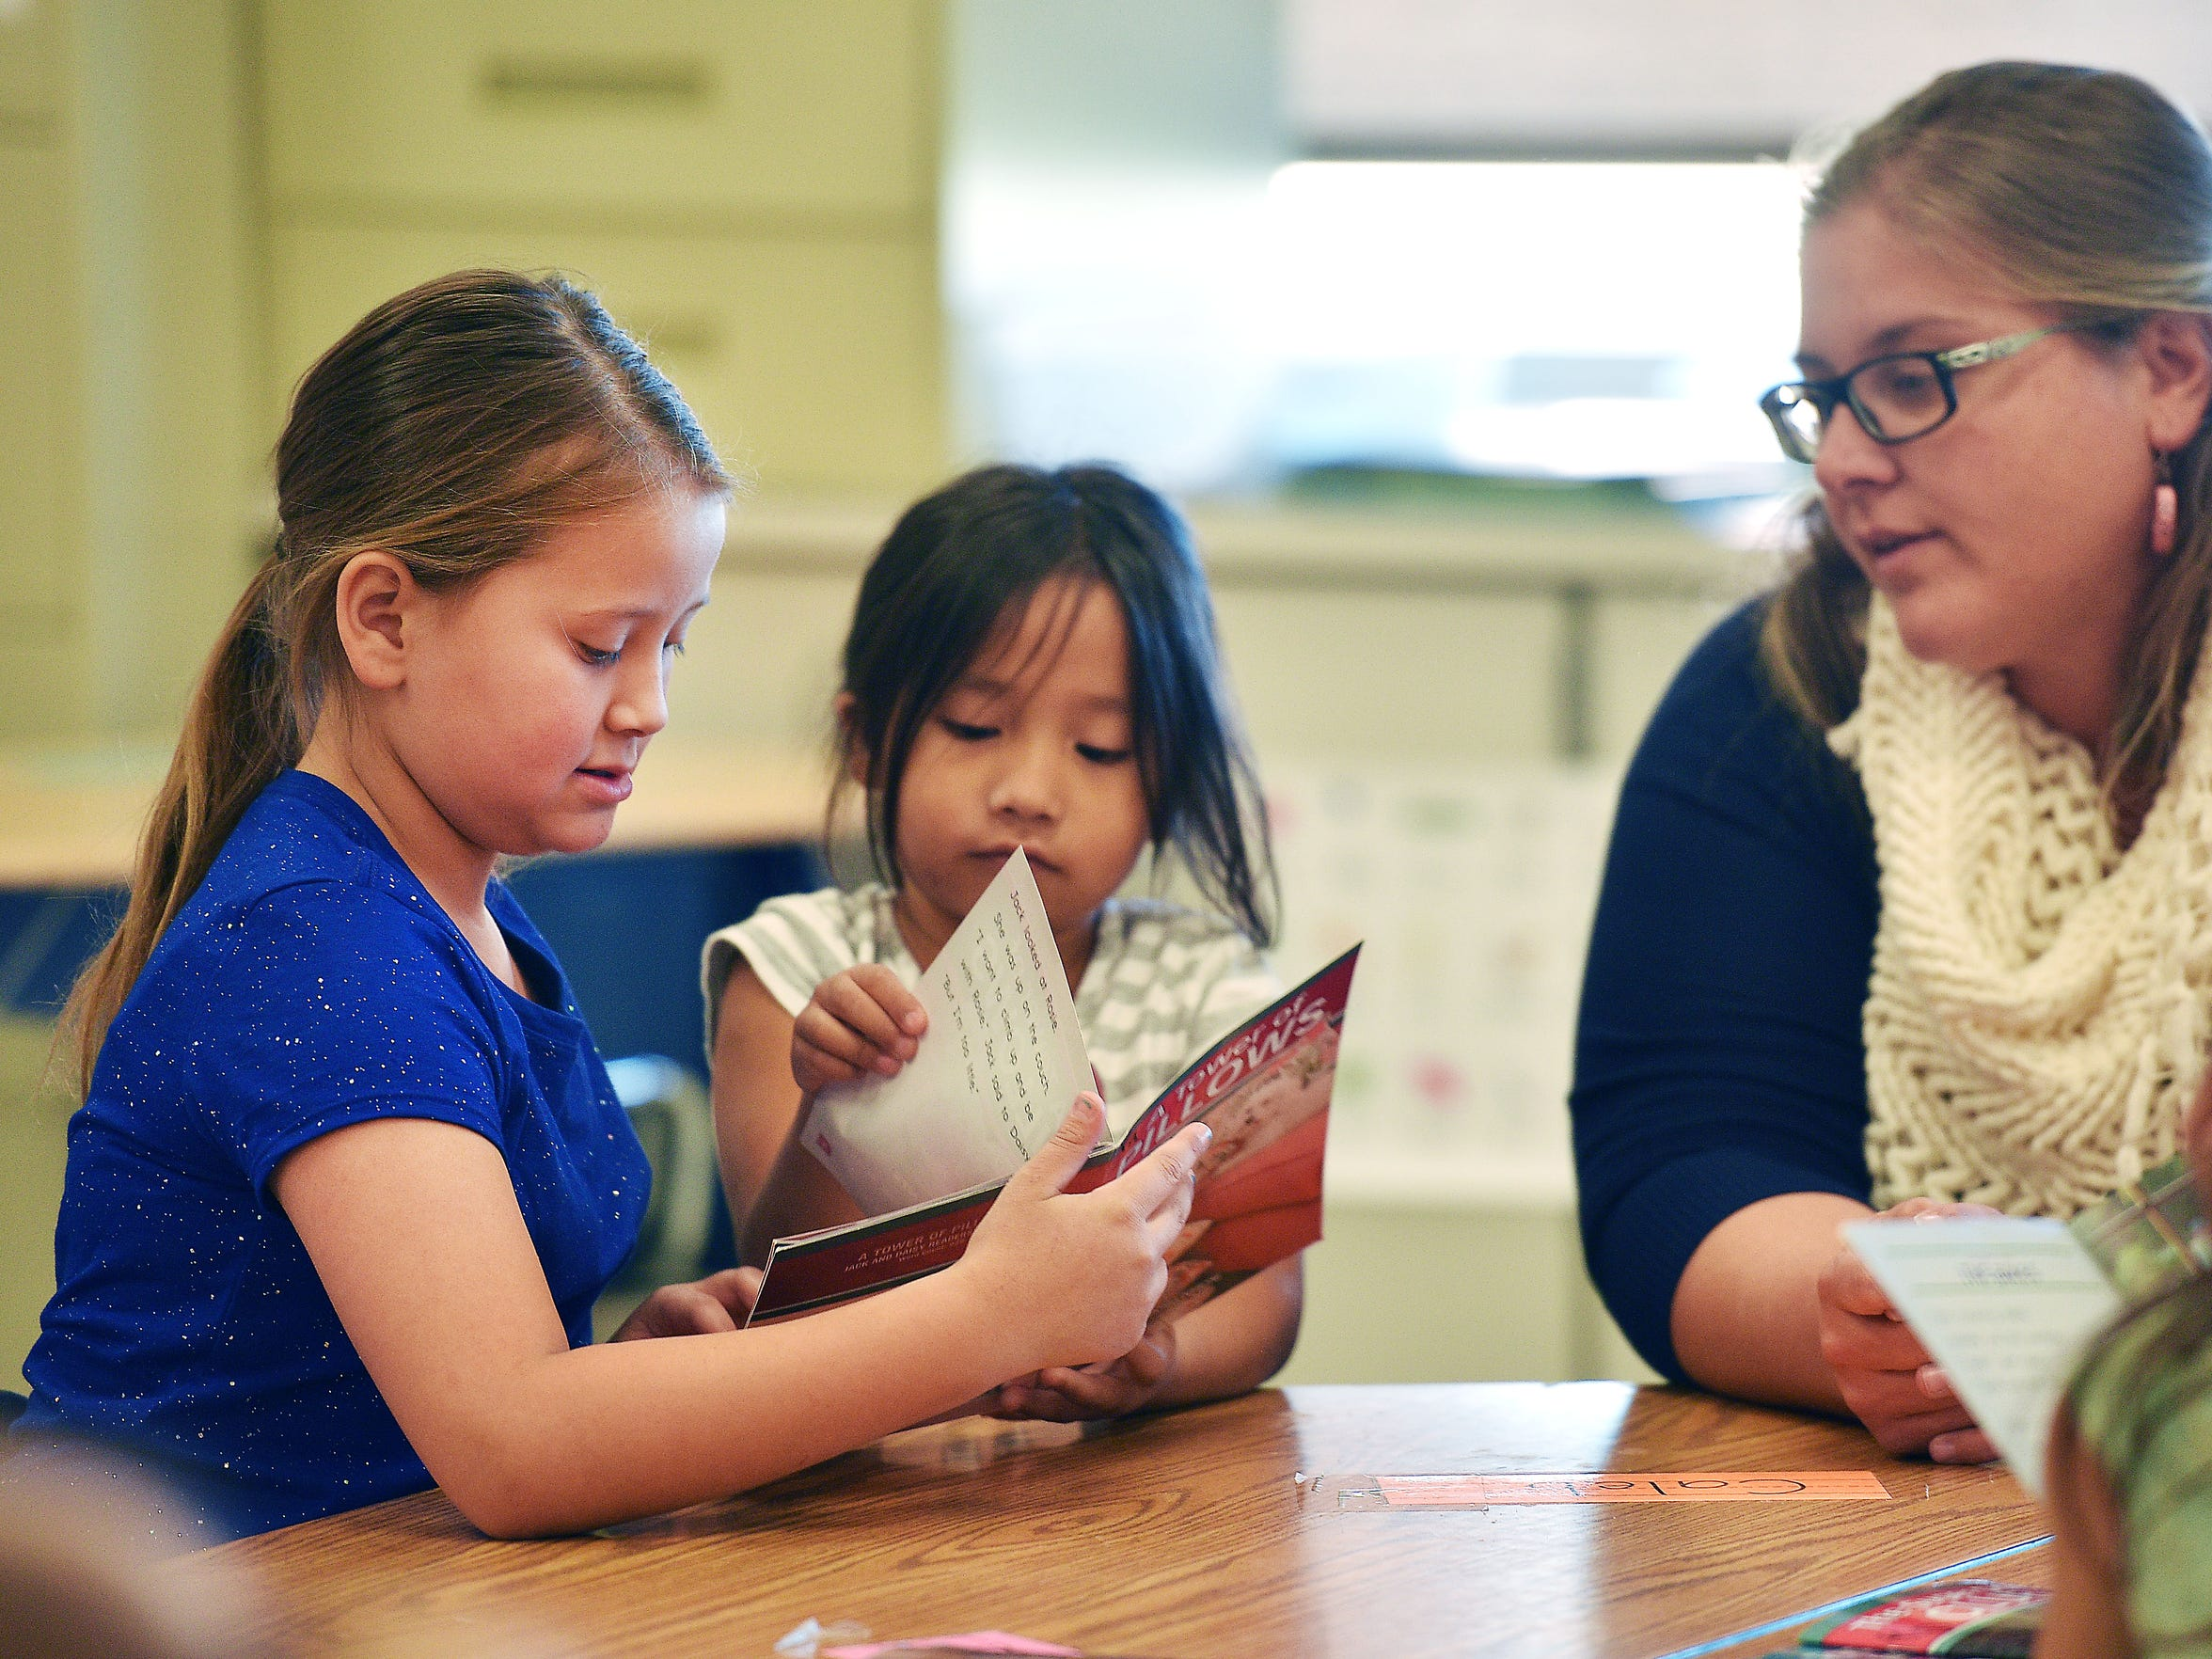 Third grader Aubrianna Haukaas, from left, reads a book to kindergartener Emily Songer and state paraprofessional educator Katie Sayler Wednesday, Nov. 15, at Todd County Elementary School in Todd County, South Dakota. Todd County Elementary School third grade students spend reading time with younger students at the school.